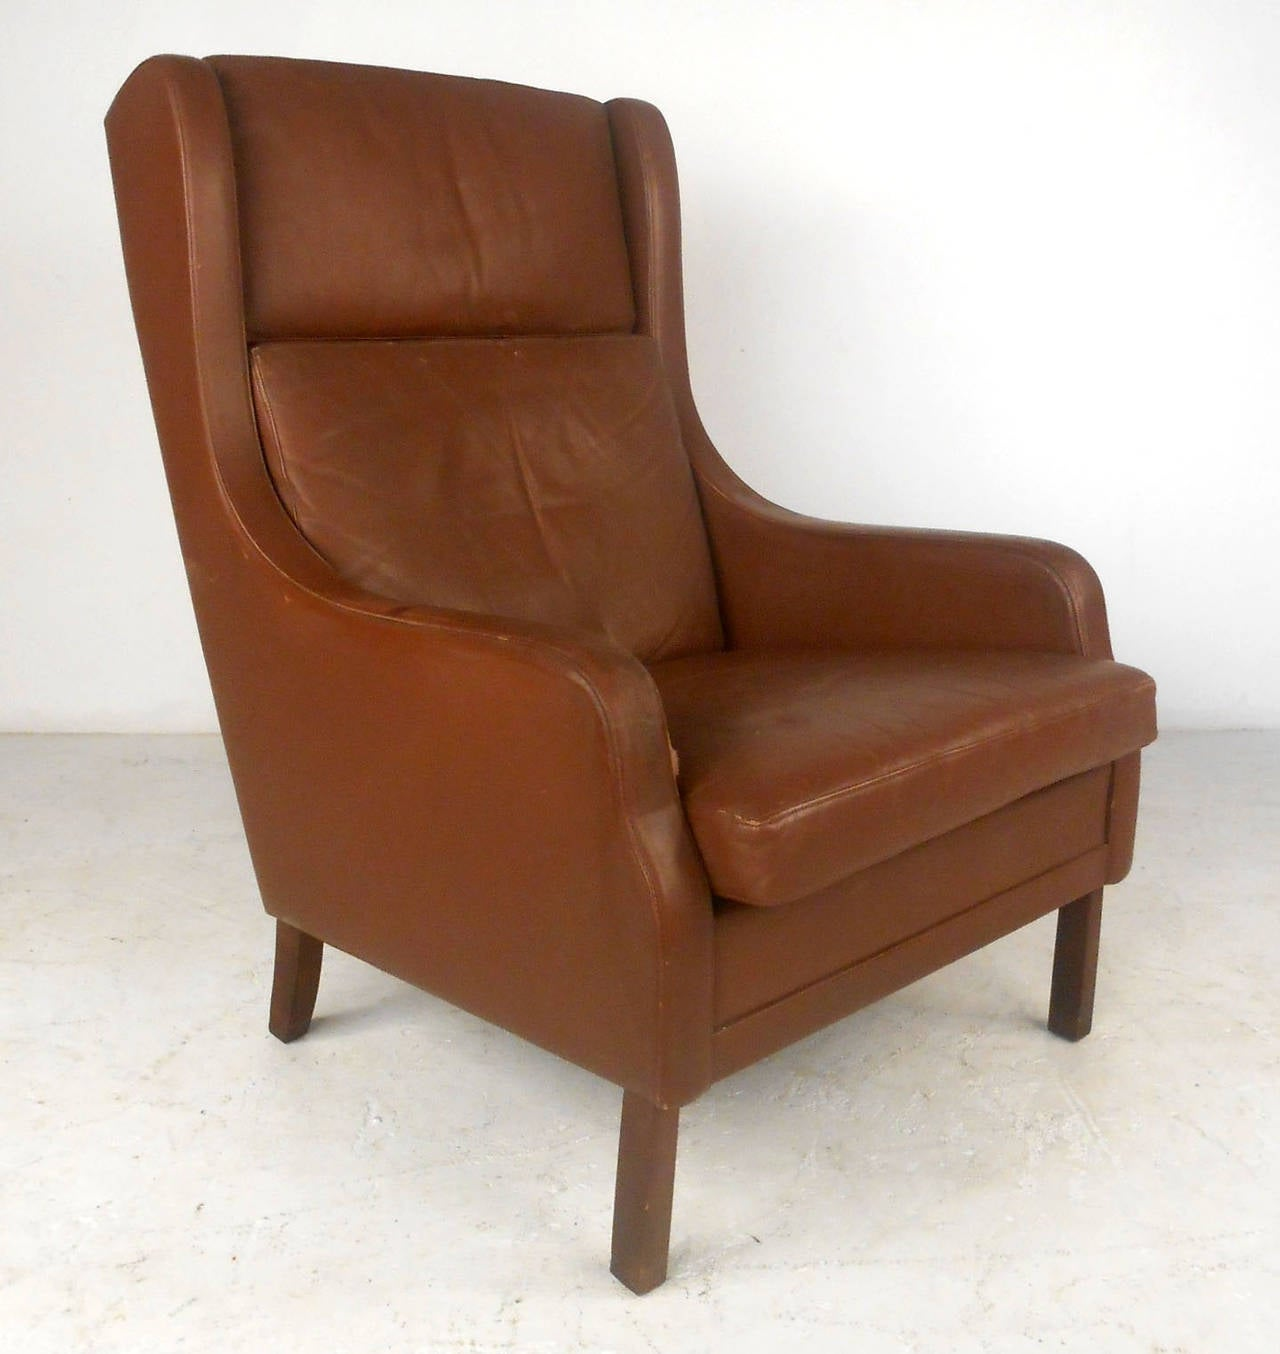 This wonderful vintage leather chair features a remarkably comfortable three-piece cushion system, Classic Mid-Century shape, and rich vintage worn leather. Please confirm item location (NY or NJ).